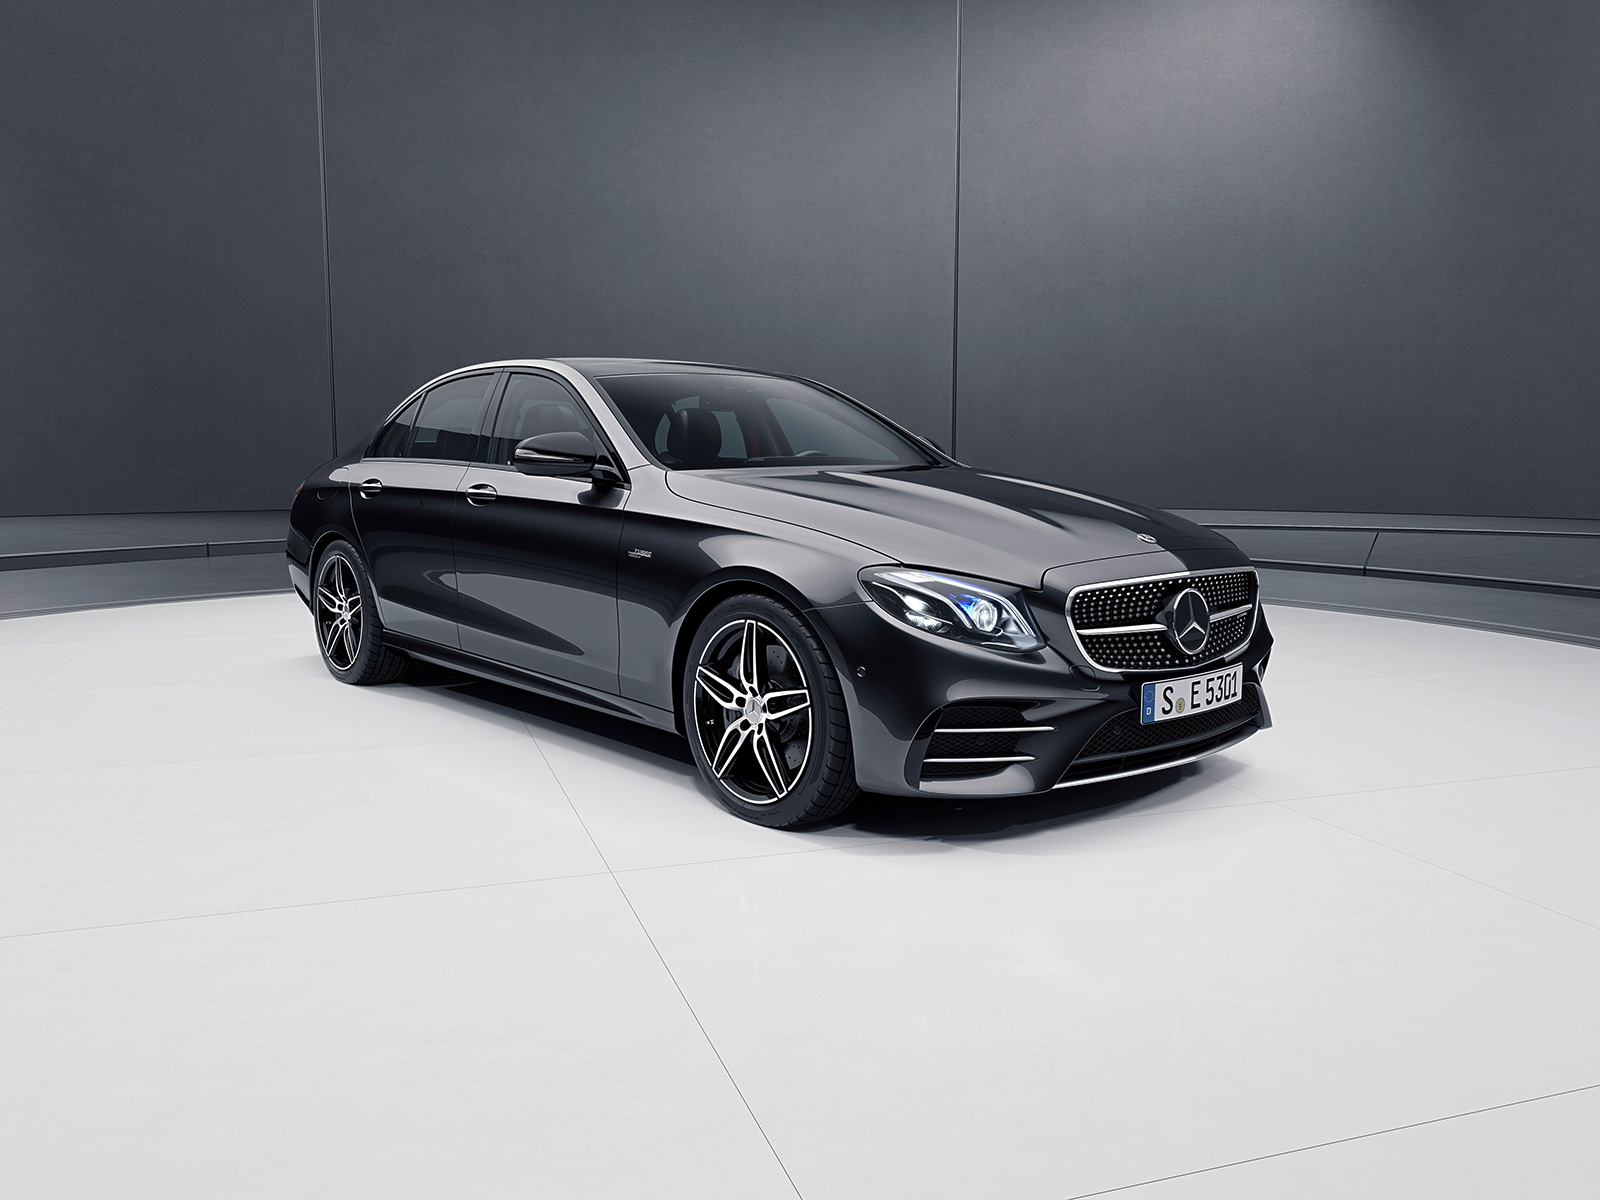 2019 mercedes amg e53 sedan and wagon break cover news. Black Bedroom Furniture Sets. Home Design Ideas